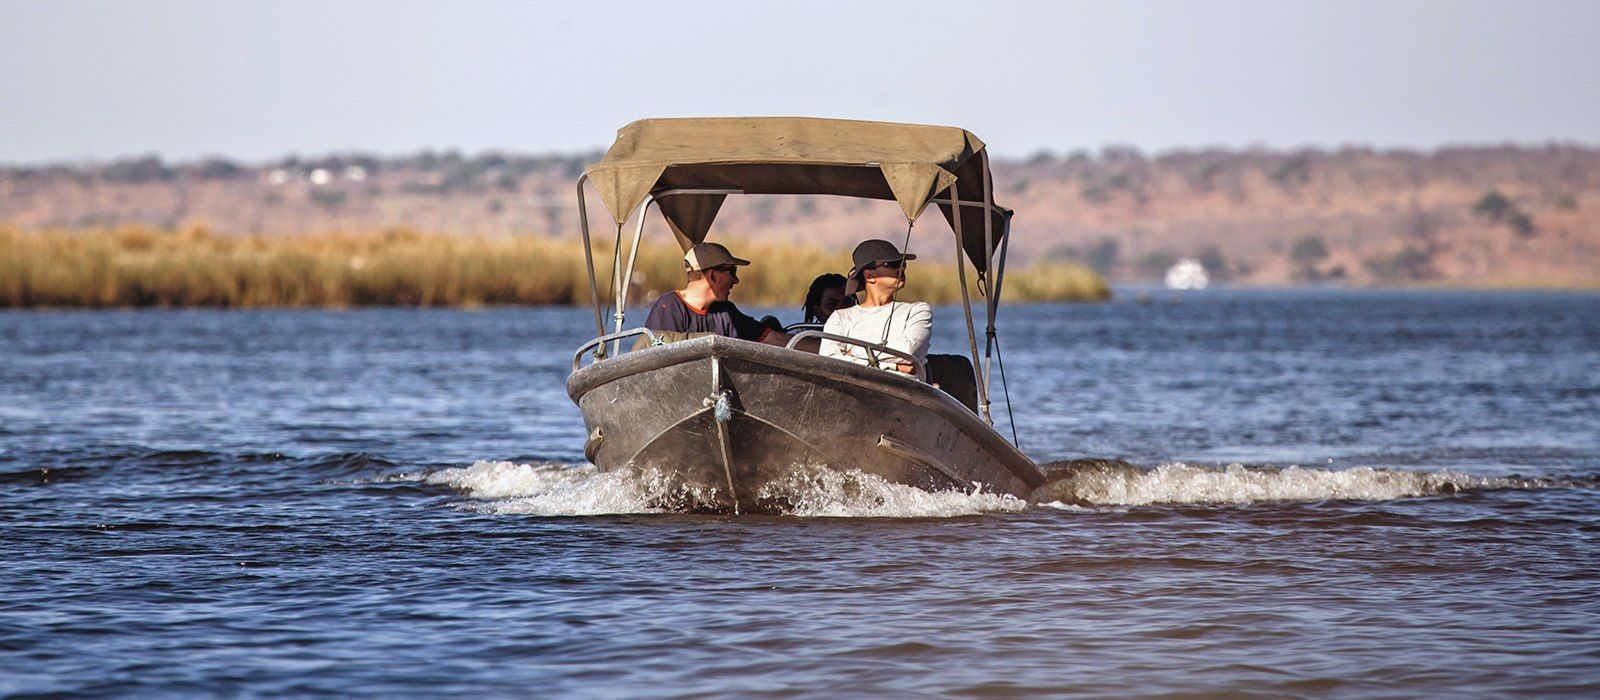 Destination Chobe National Park Botswana